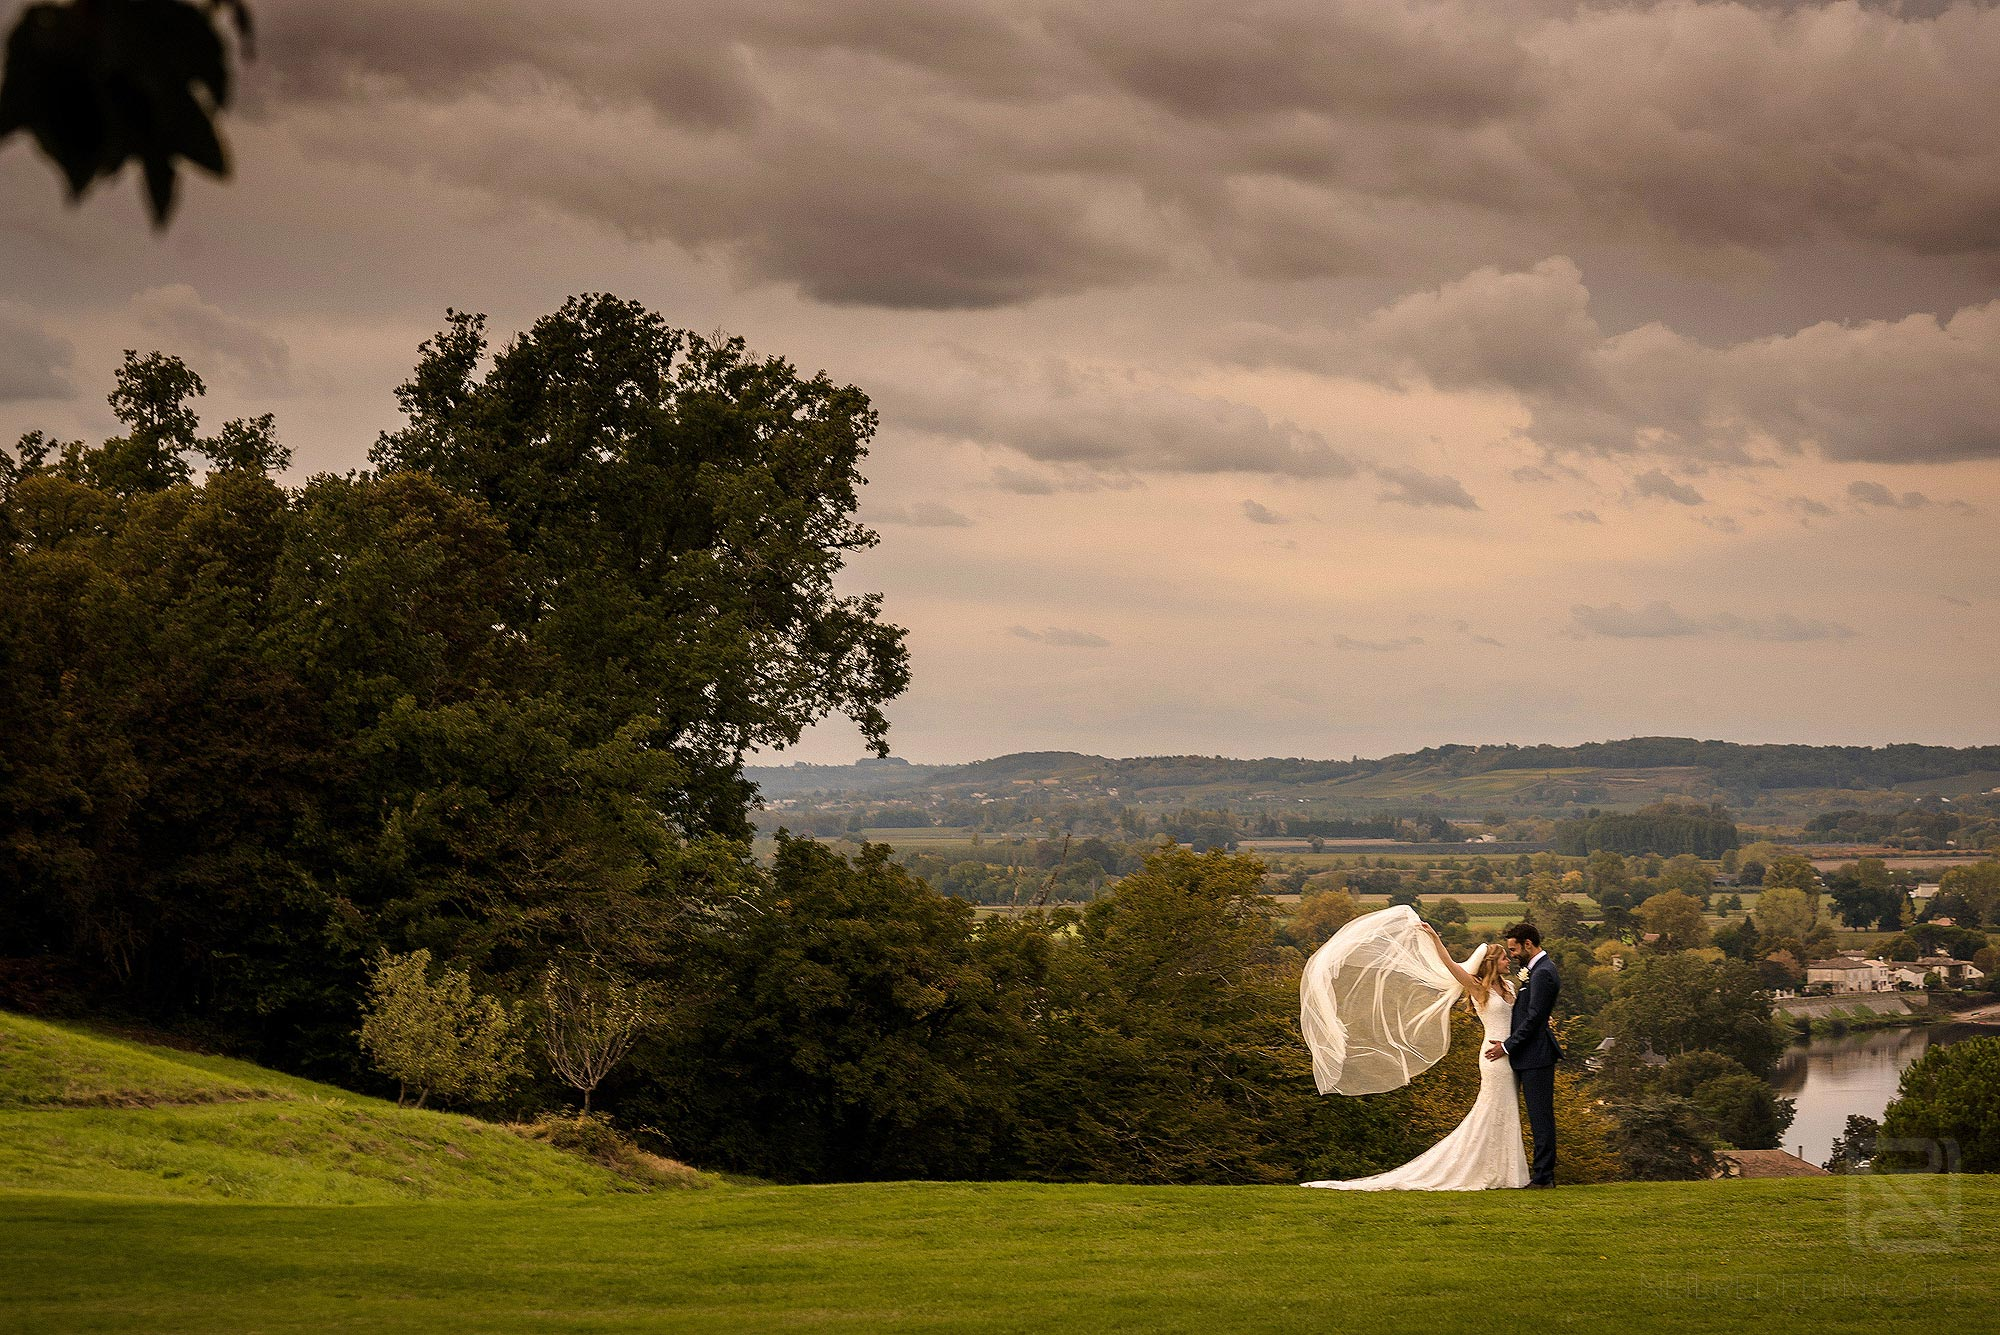 bride's veil blowing in the wind at Chateau Soulac